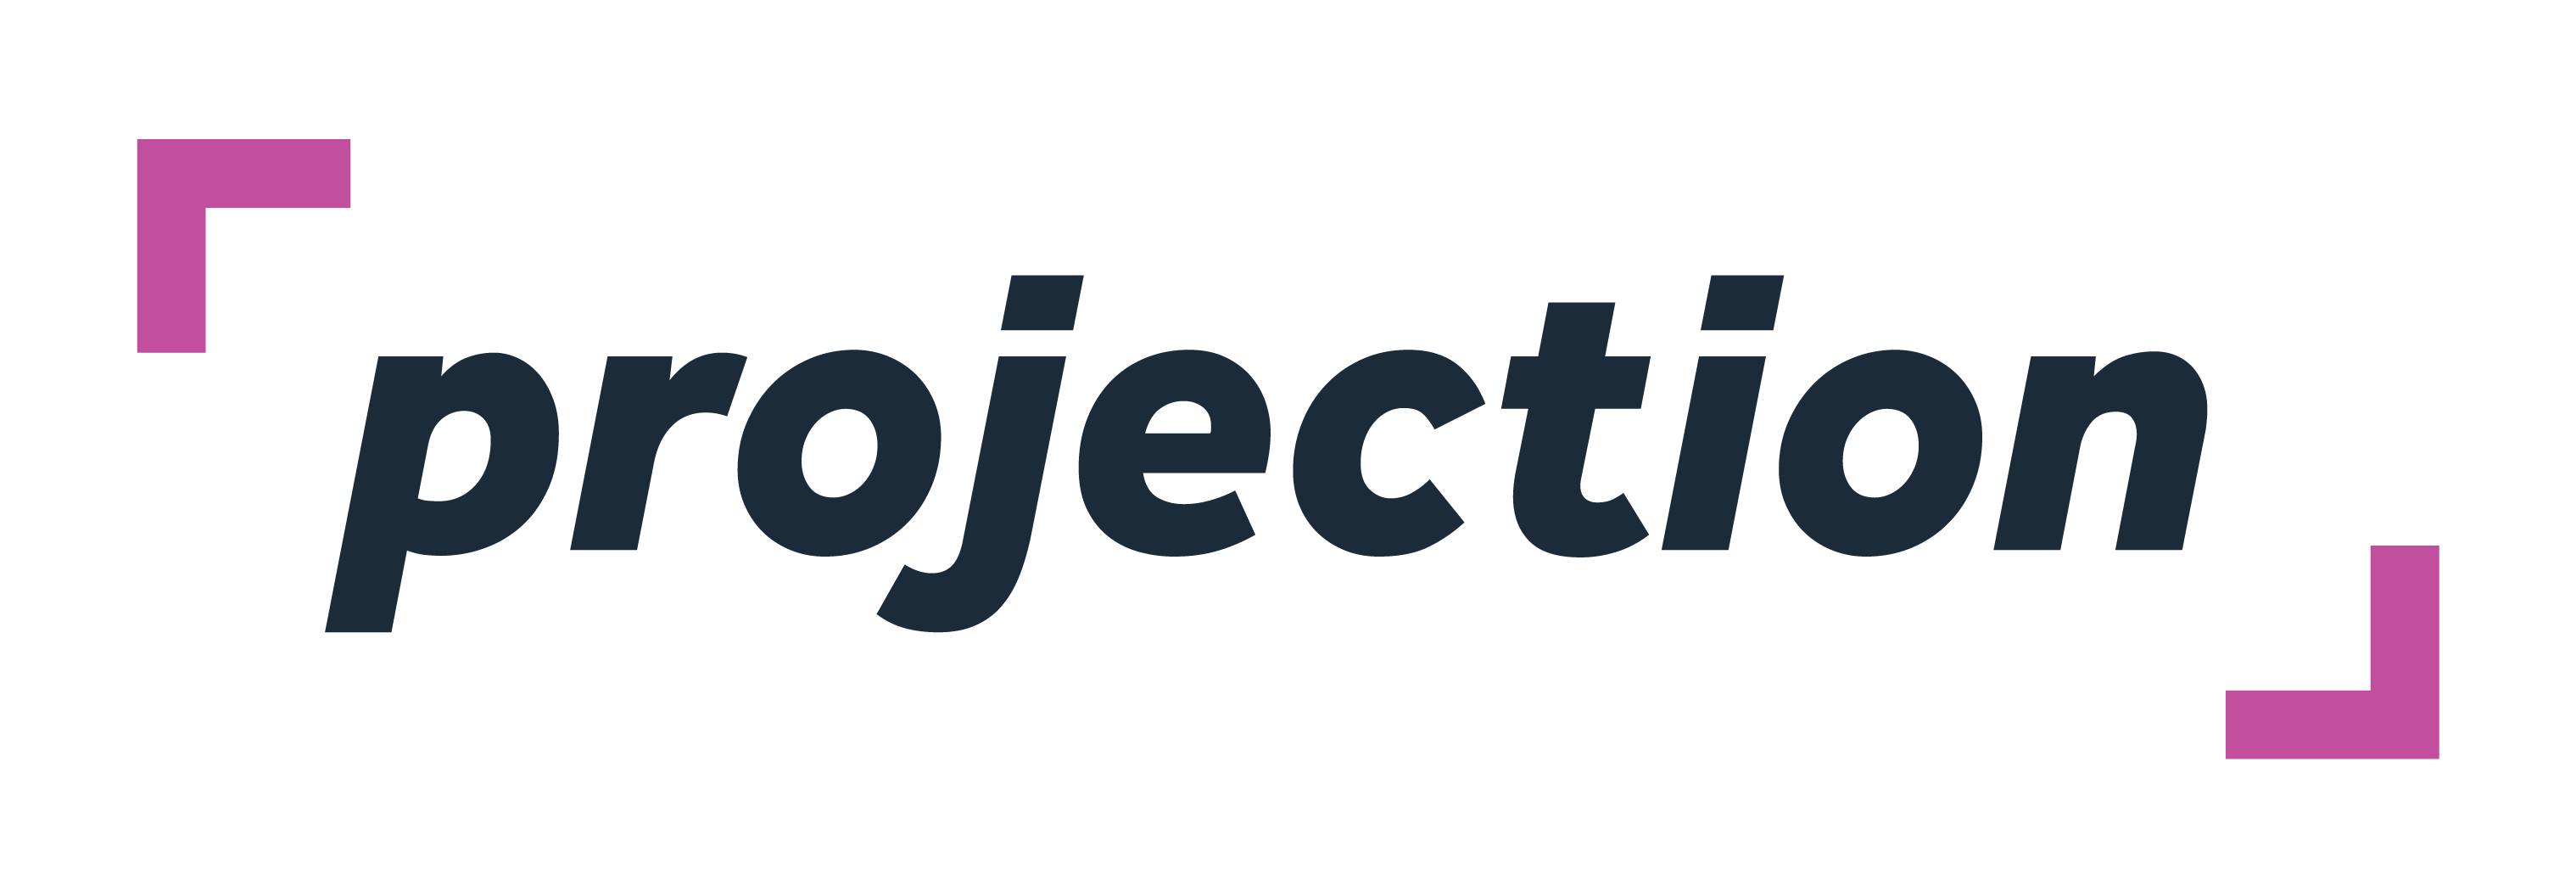 AV and Technology Veteran Projection Launches New Brand Look